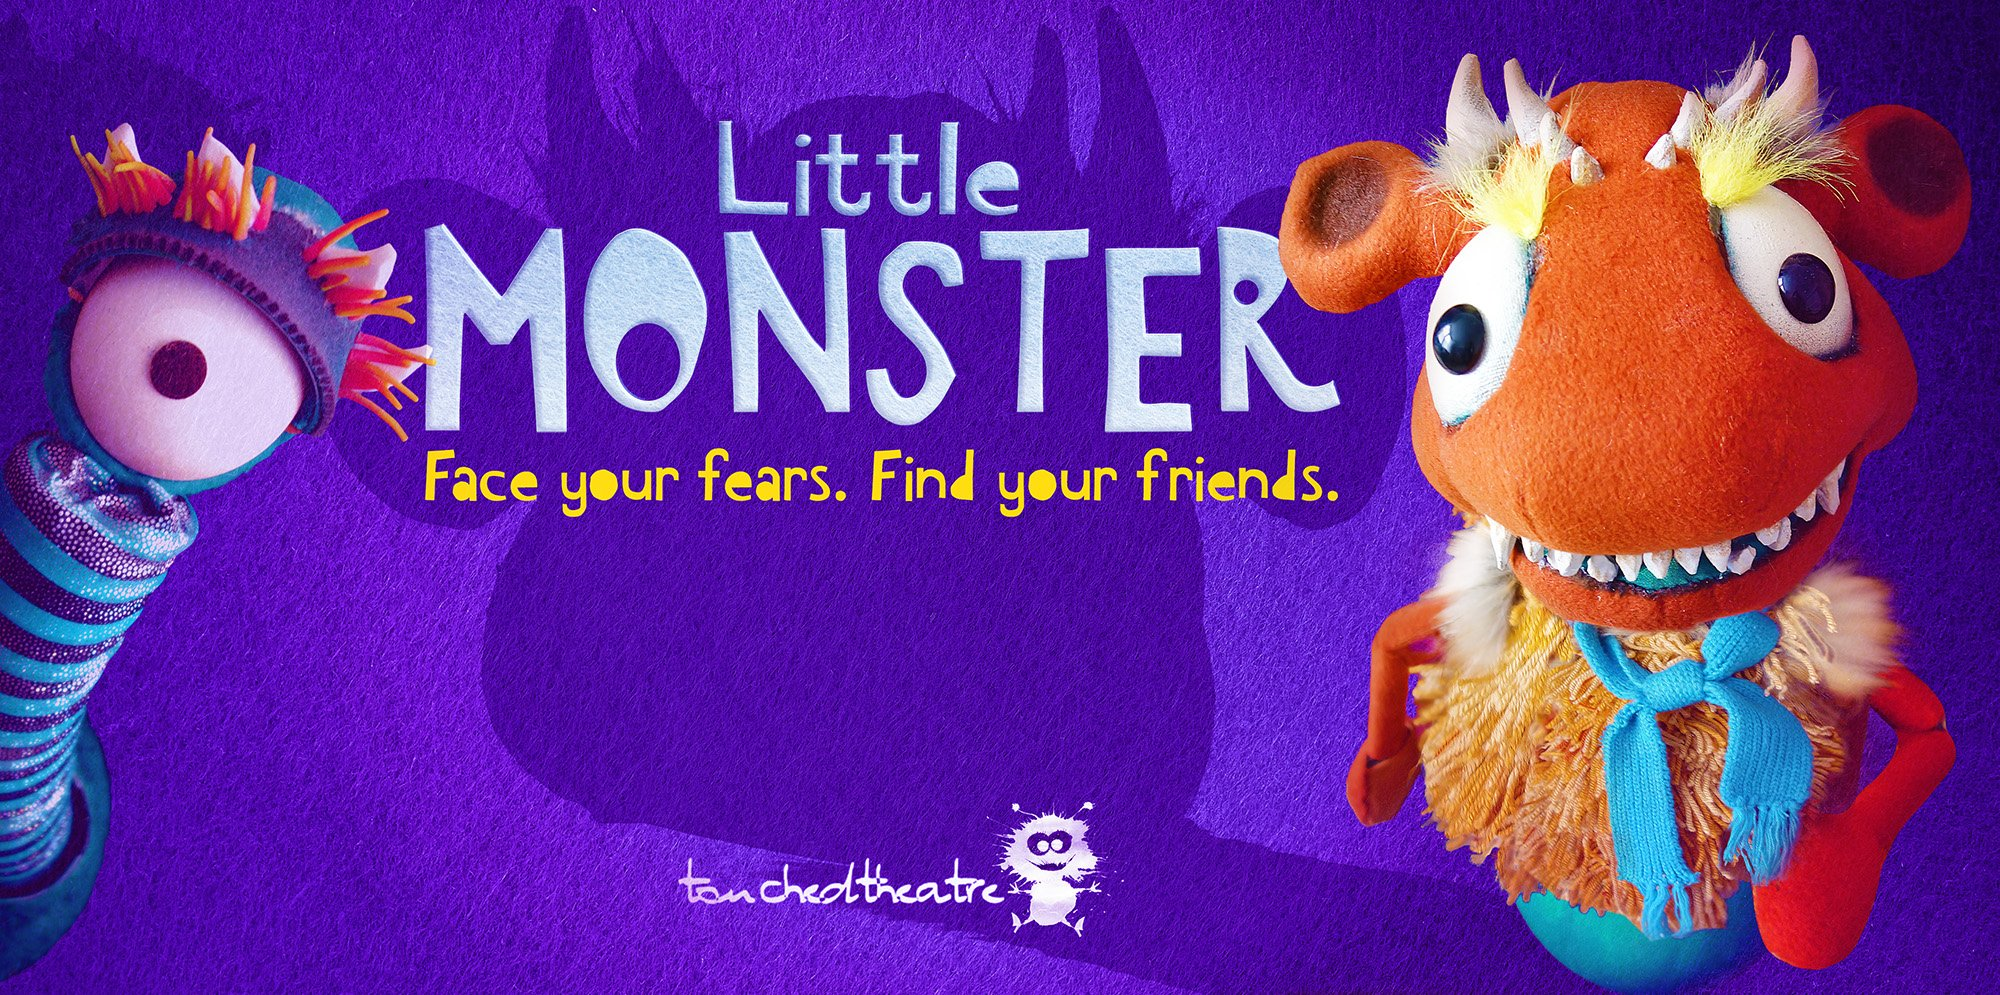 The text 'Little Monster' is in the middle on a purple background. On the left, there is a one-eyed monster. On the right there is an orange monster wearing a blue scarf. The tag line reads 'face your fears, find your friends'